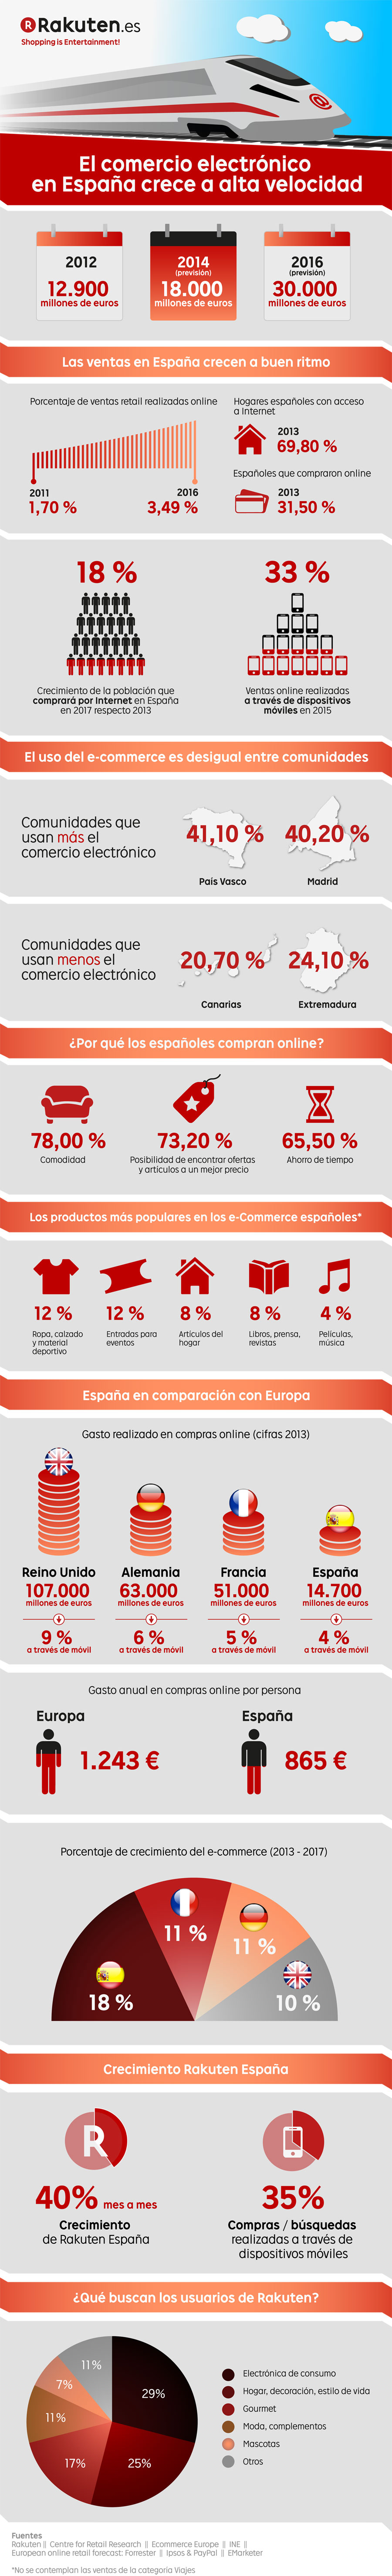 Infographic from Rakuten about the ecommerce growth in Spain